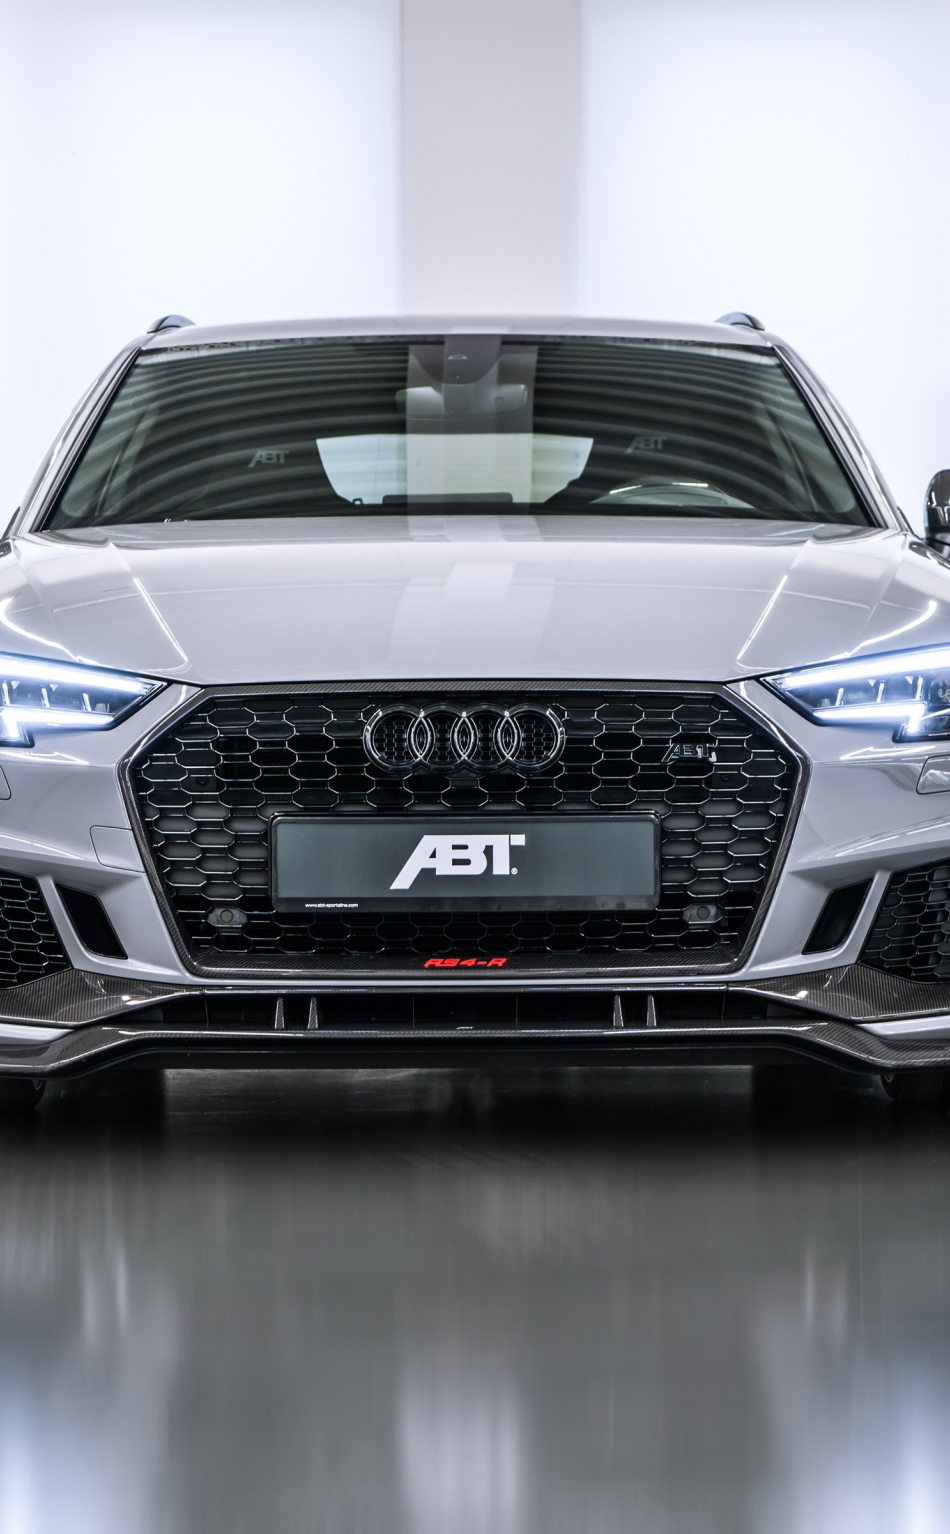 Download 950x1534 Wallpaper 2018 Abt Audi Rs4 R Avant Luxurious Car Front Iphone 950x1534 Hd Image Background 3614